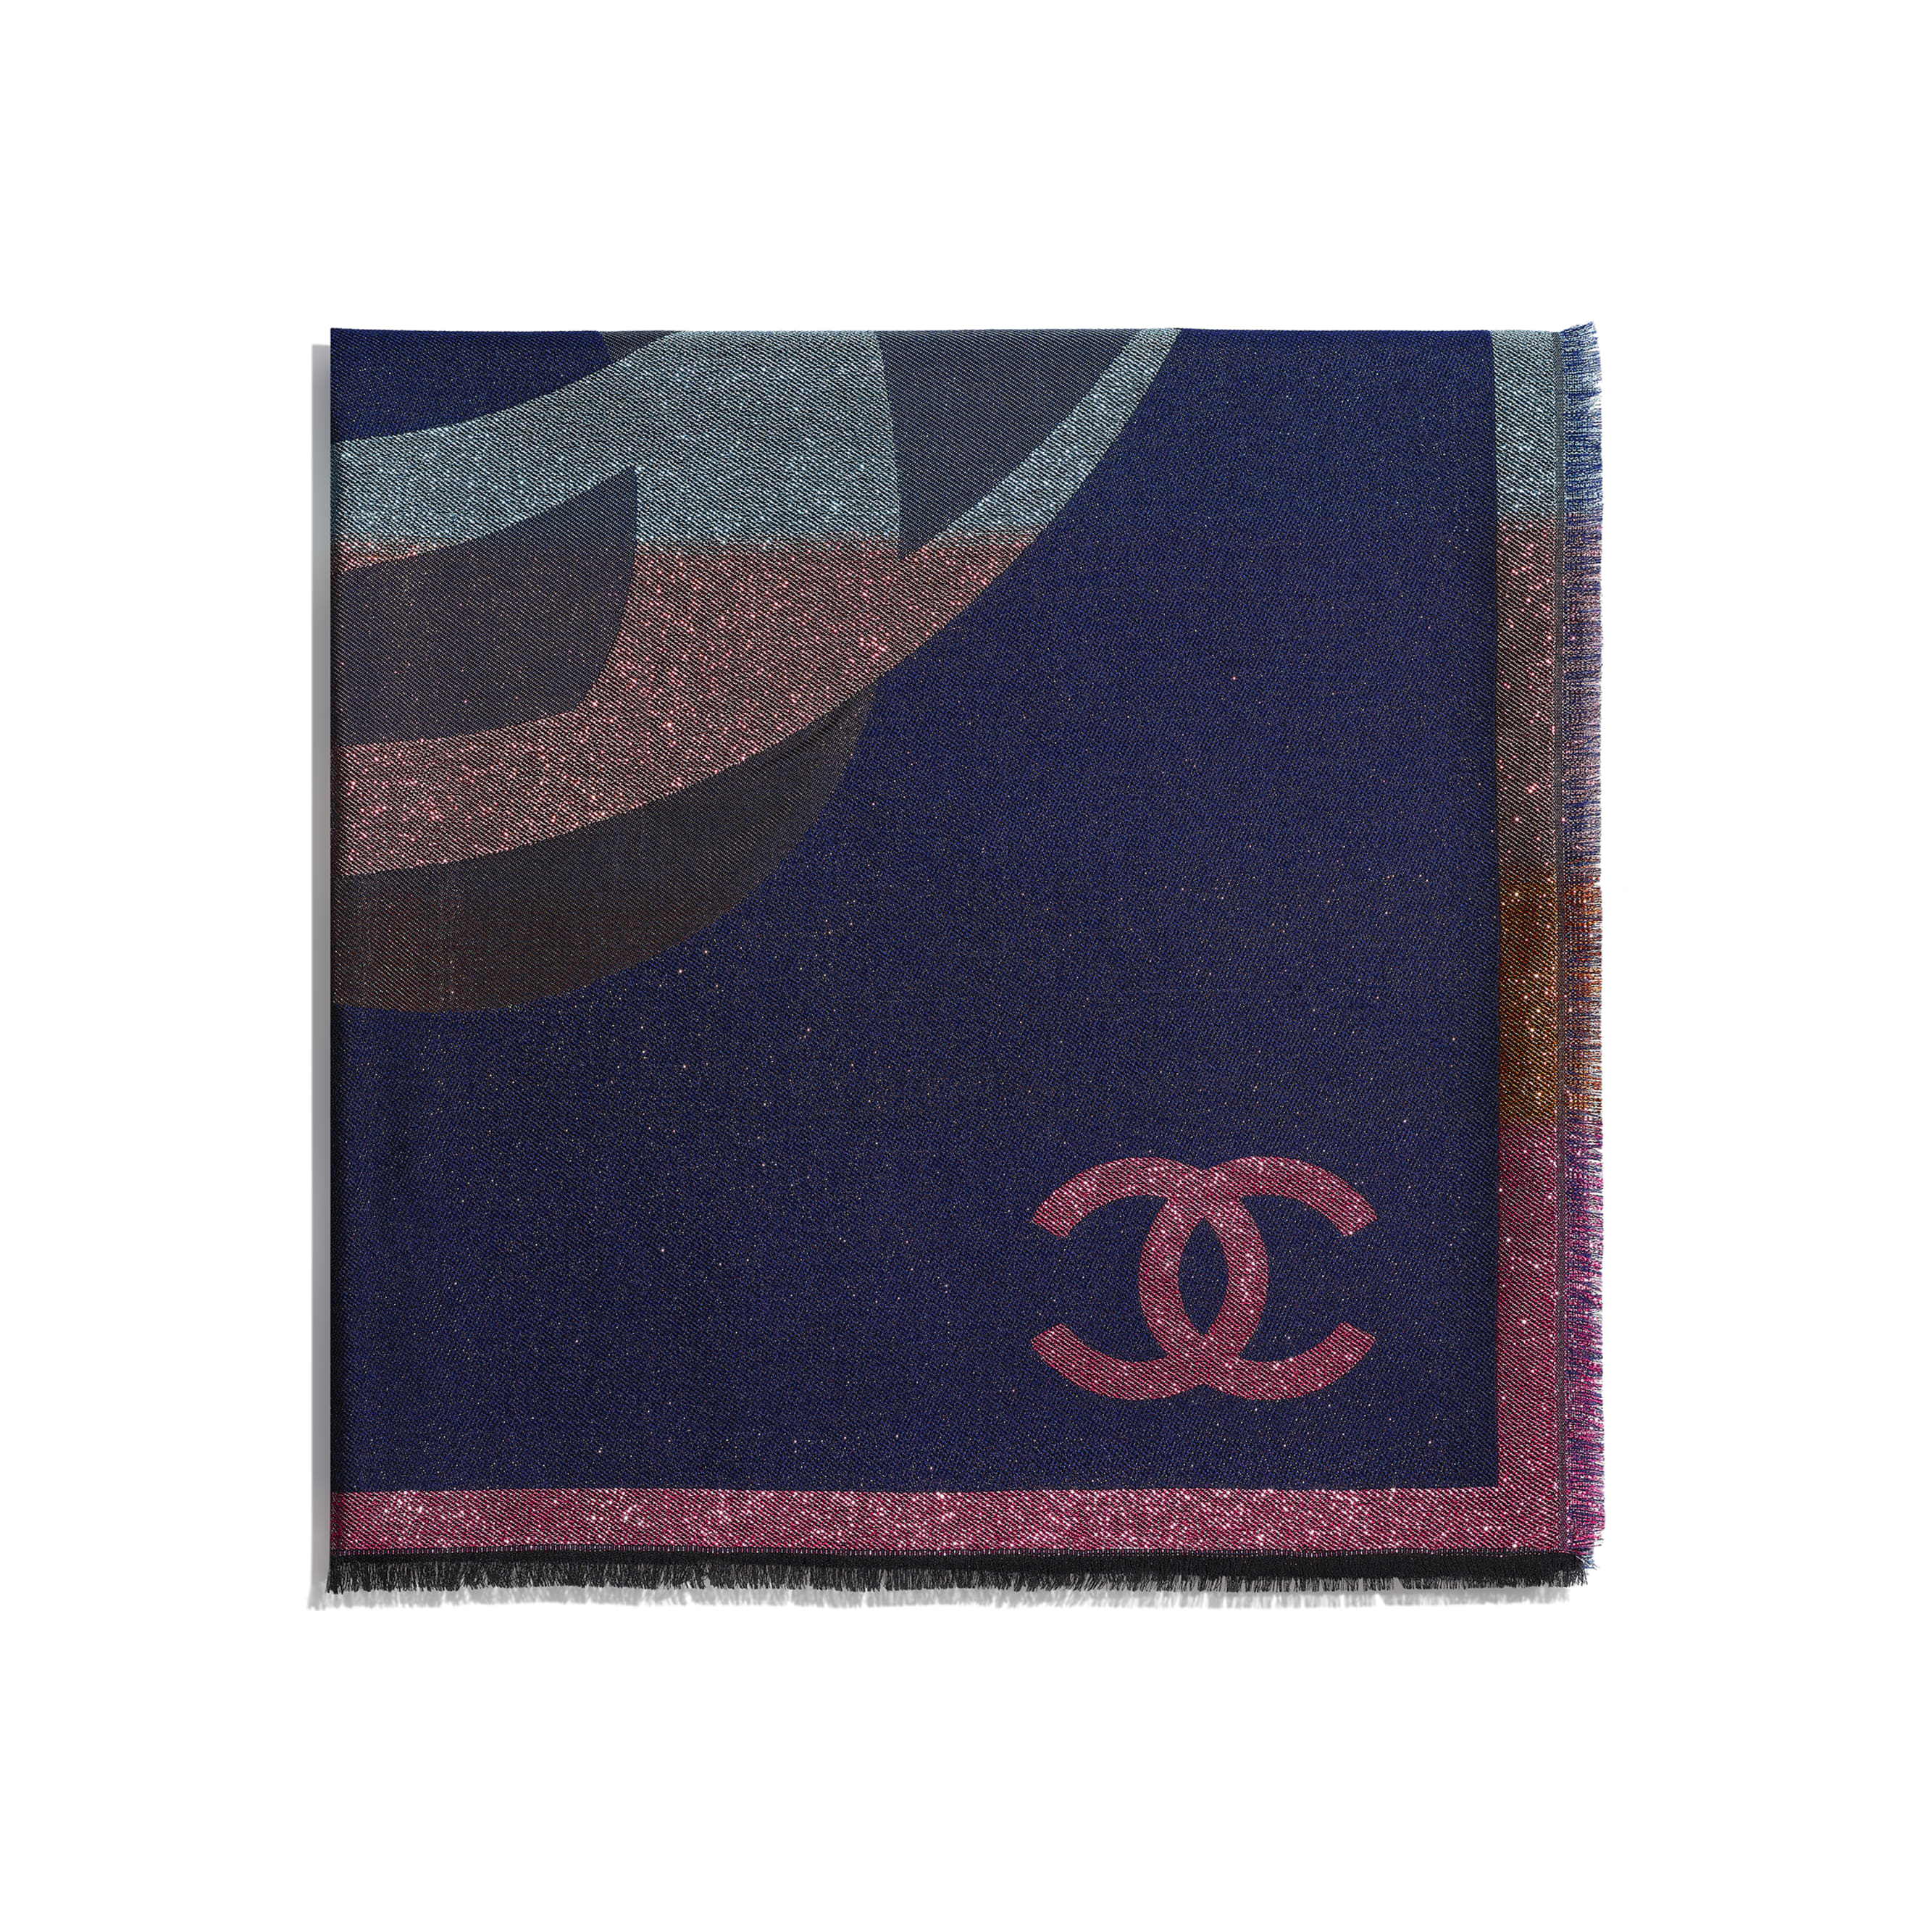 Square Scarf - Navy Blue & Multicolour - Cashmere, Silk & Metallic Fibers - CHANEL - Alternative view - see standard sized version